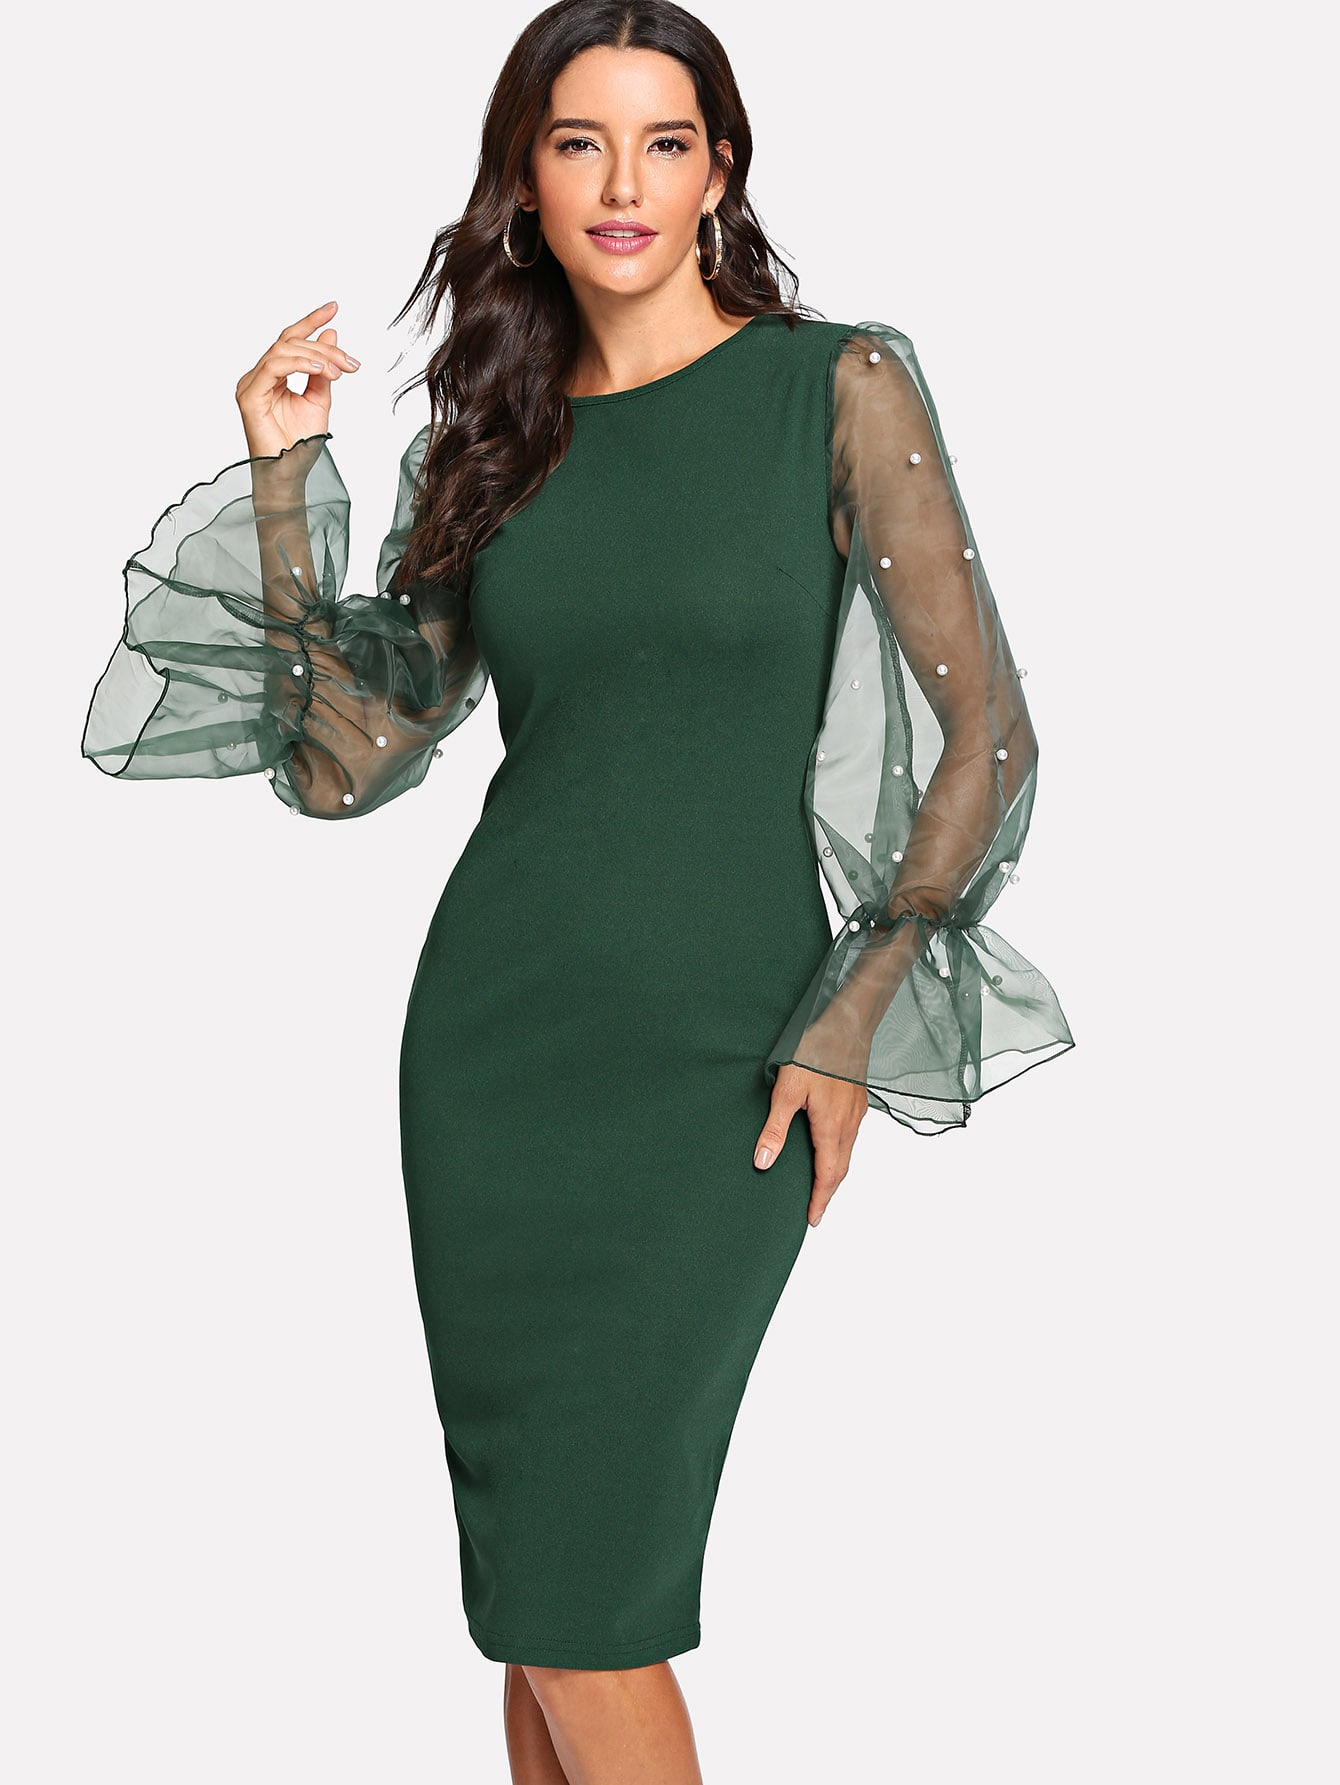 Pearl Beaded Mesh Sleeve Form Fitting Dress